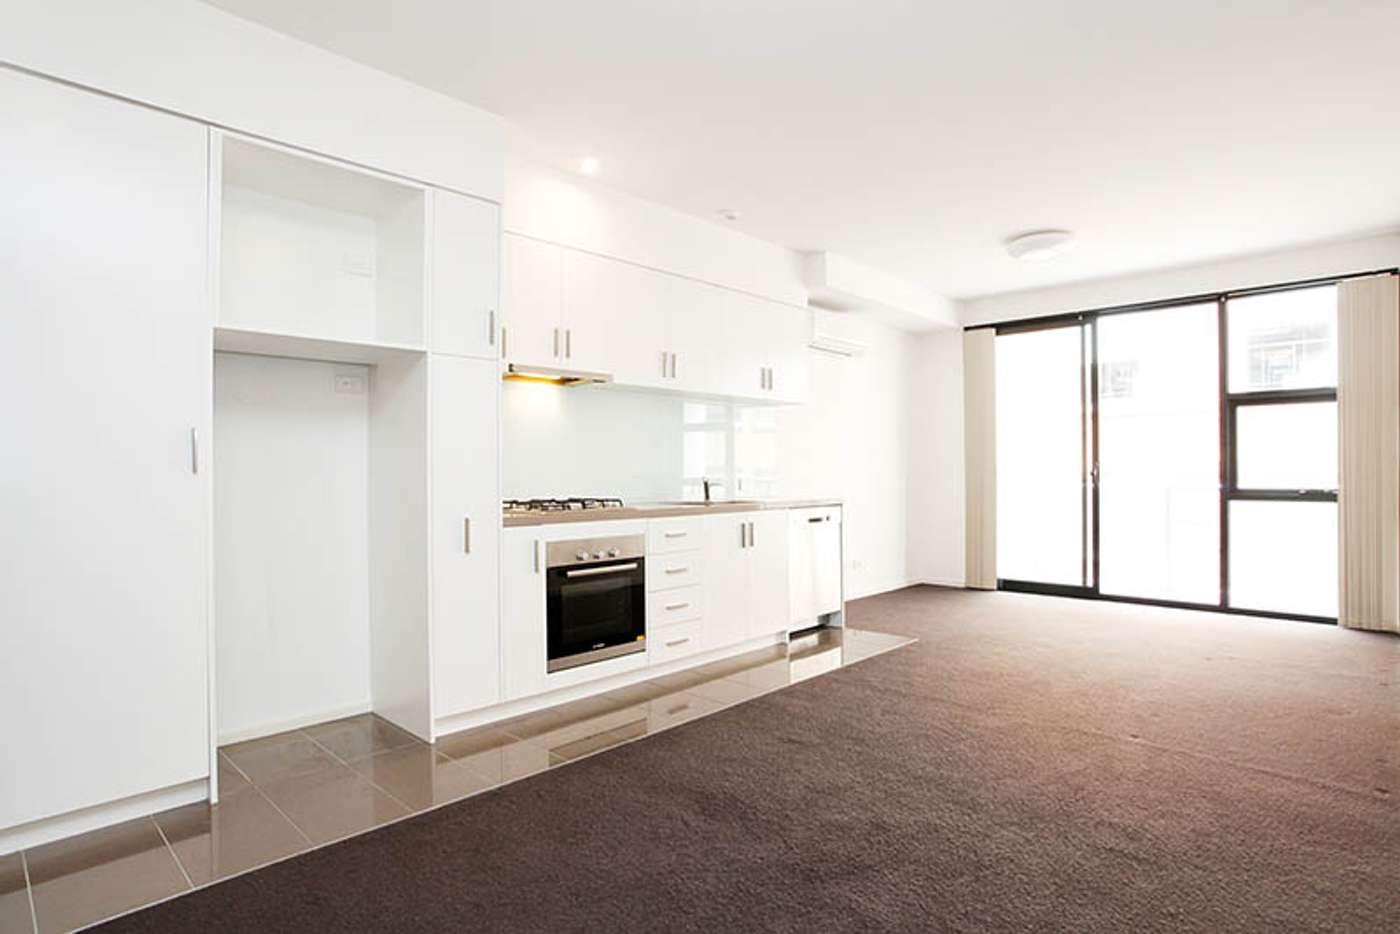 Main view of Homely apartment listing, 101/25 Oxford Street, North Melbourne VIC 3051